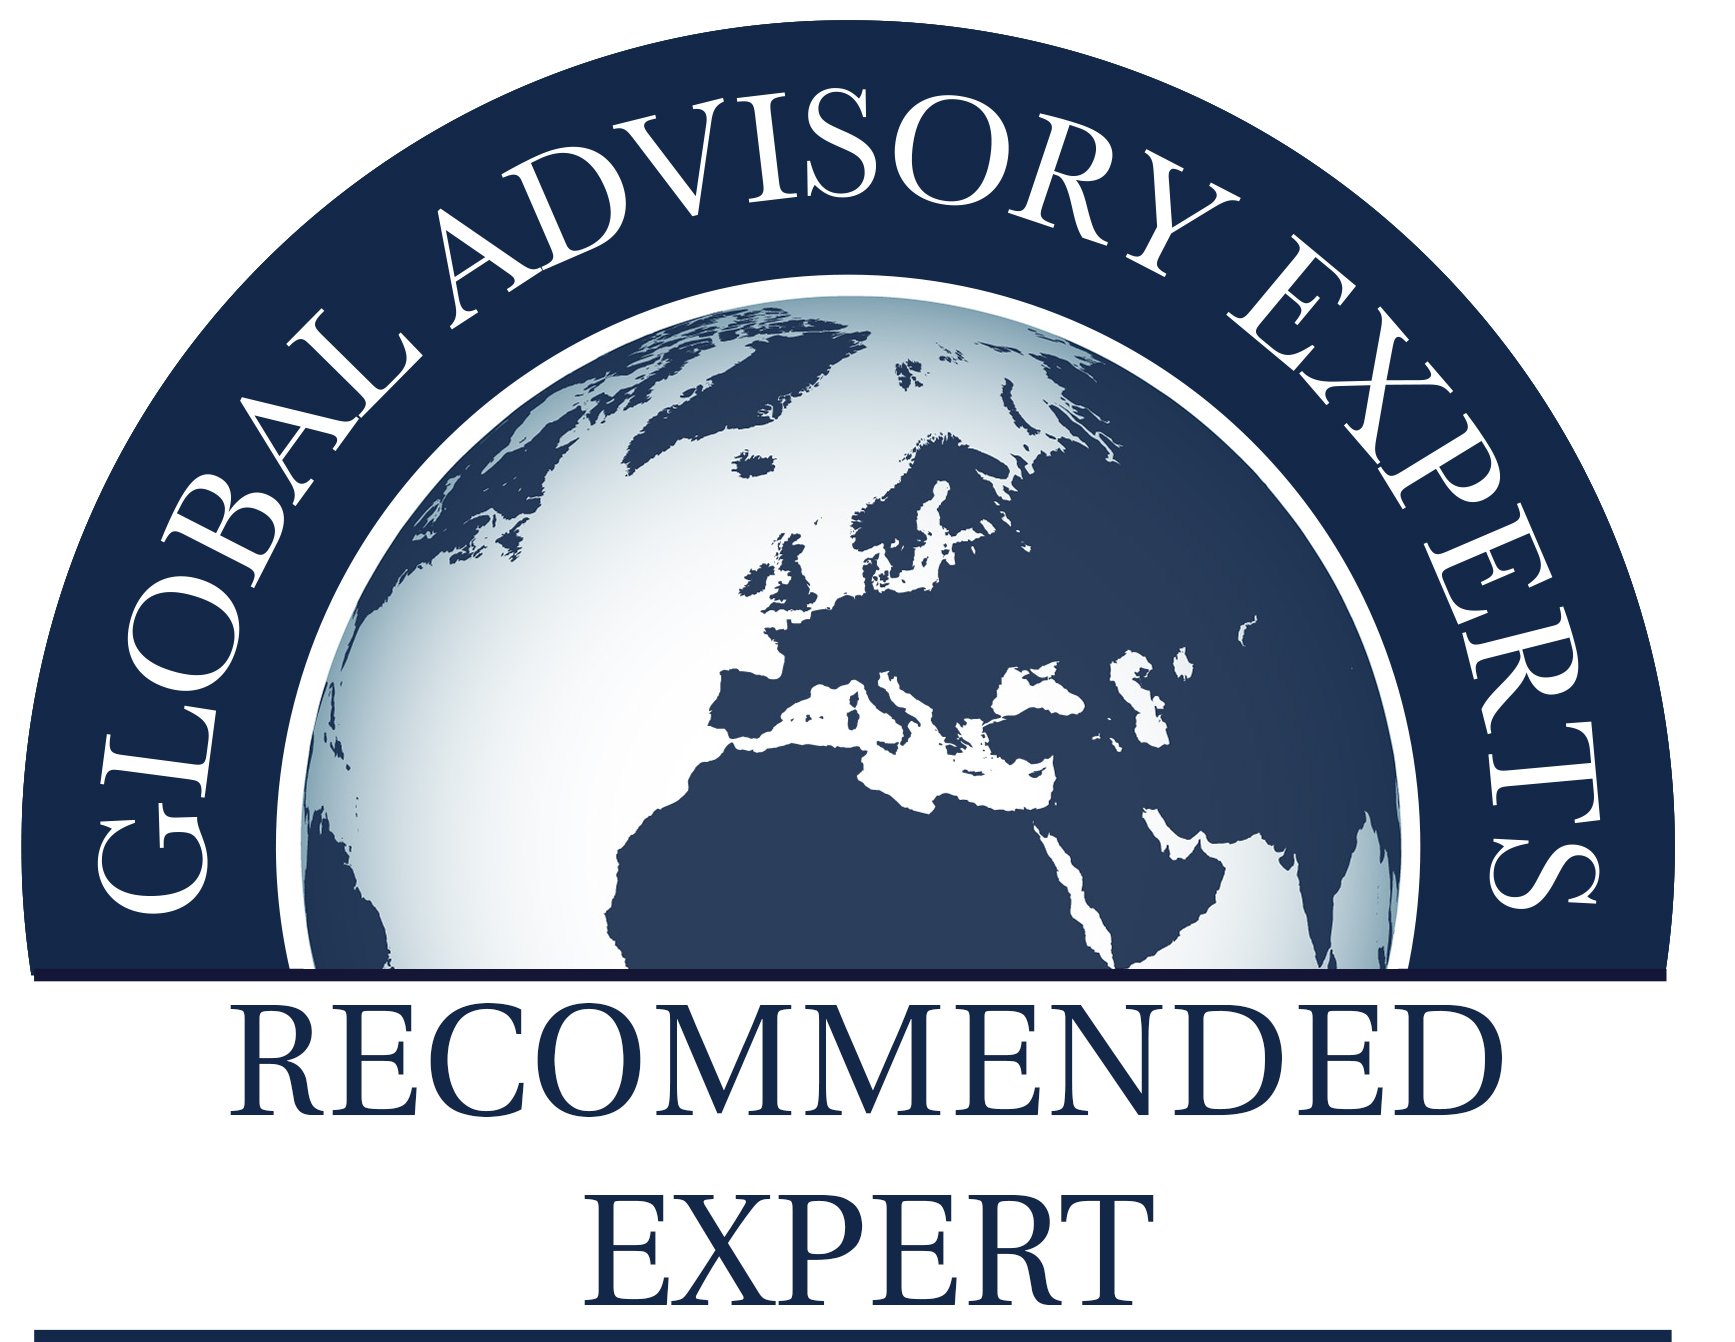 GLOBAL ADVISORY EXPERTS RECOMMENDED EXPERT